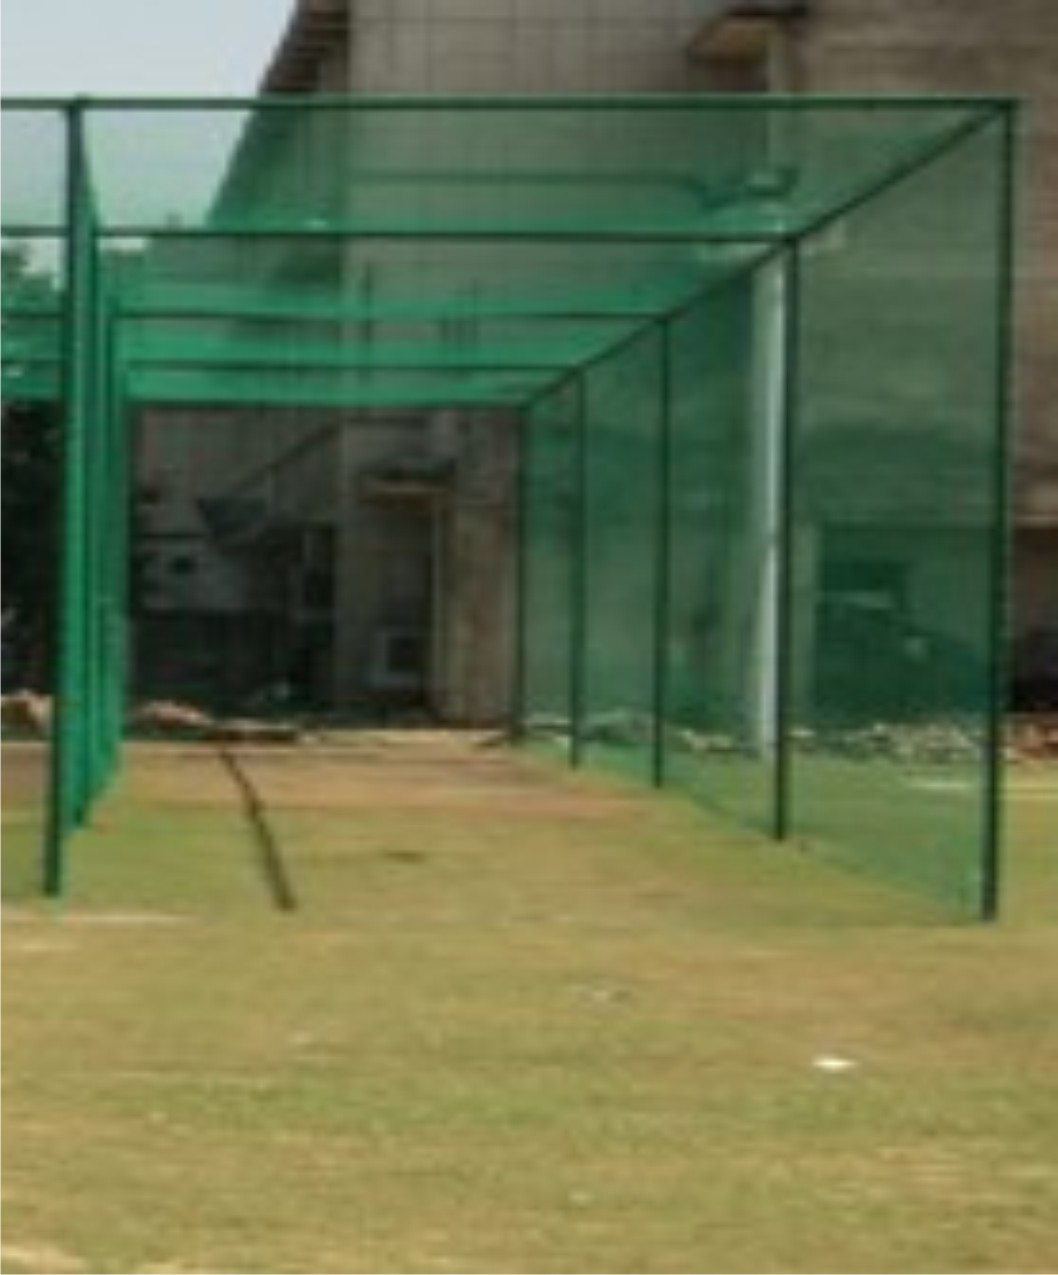 Ae Cricket Practice Net Cage - NC-F-GI